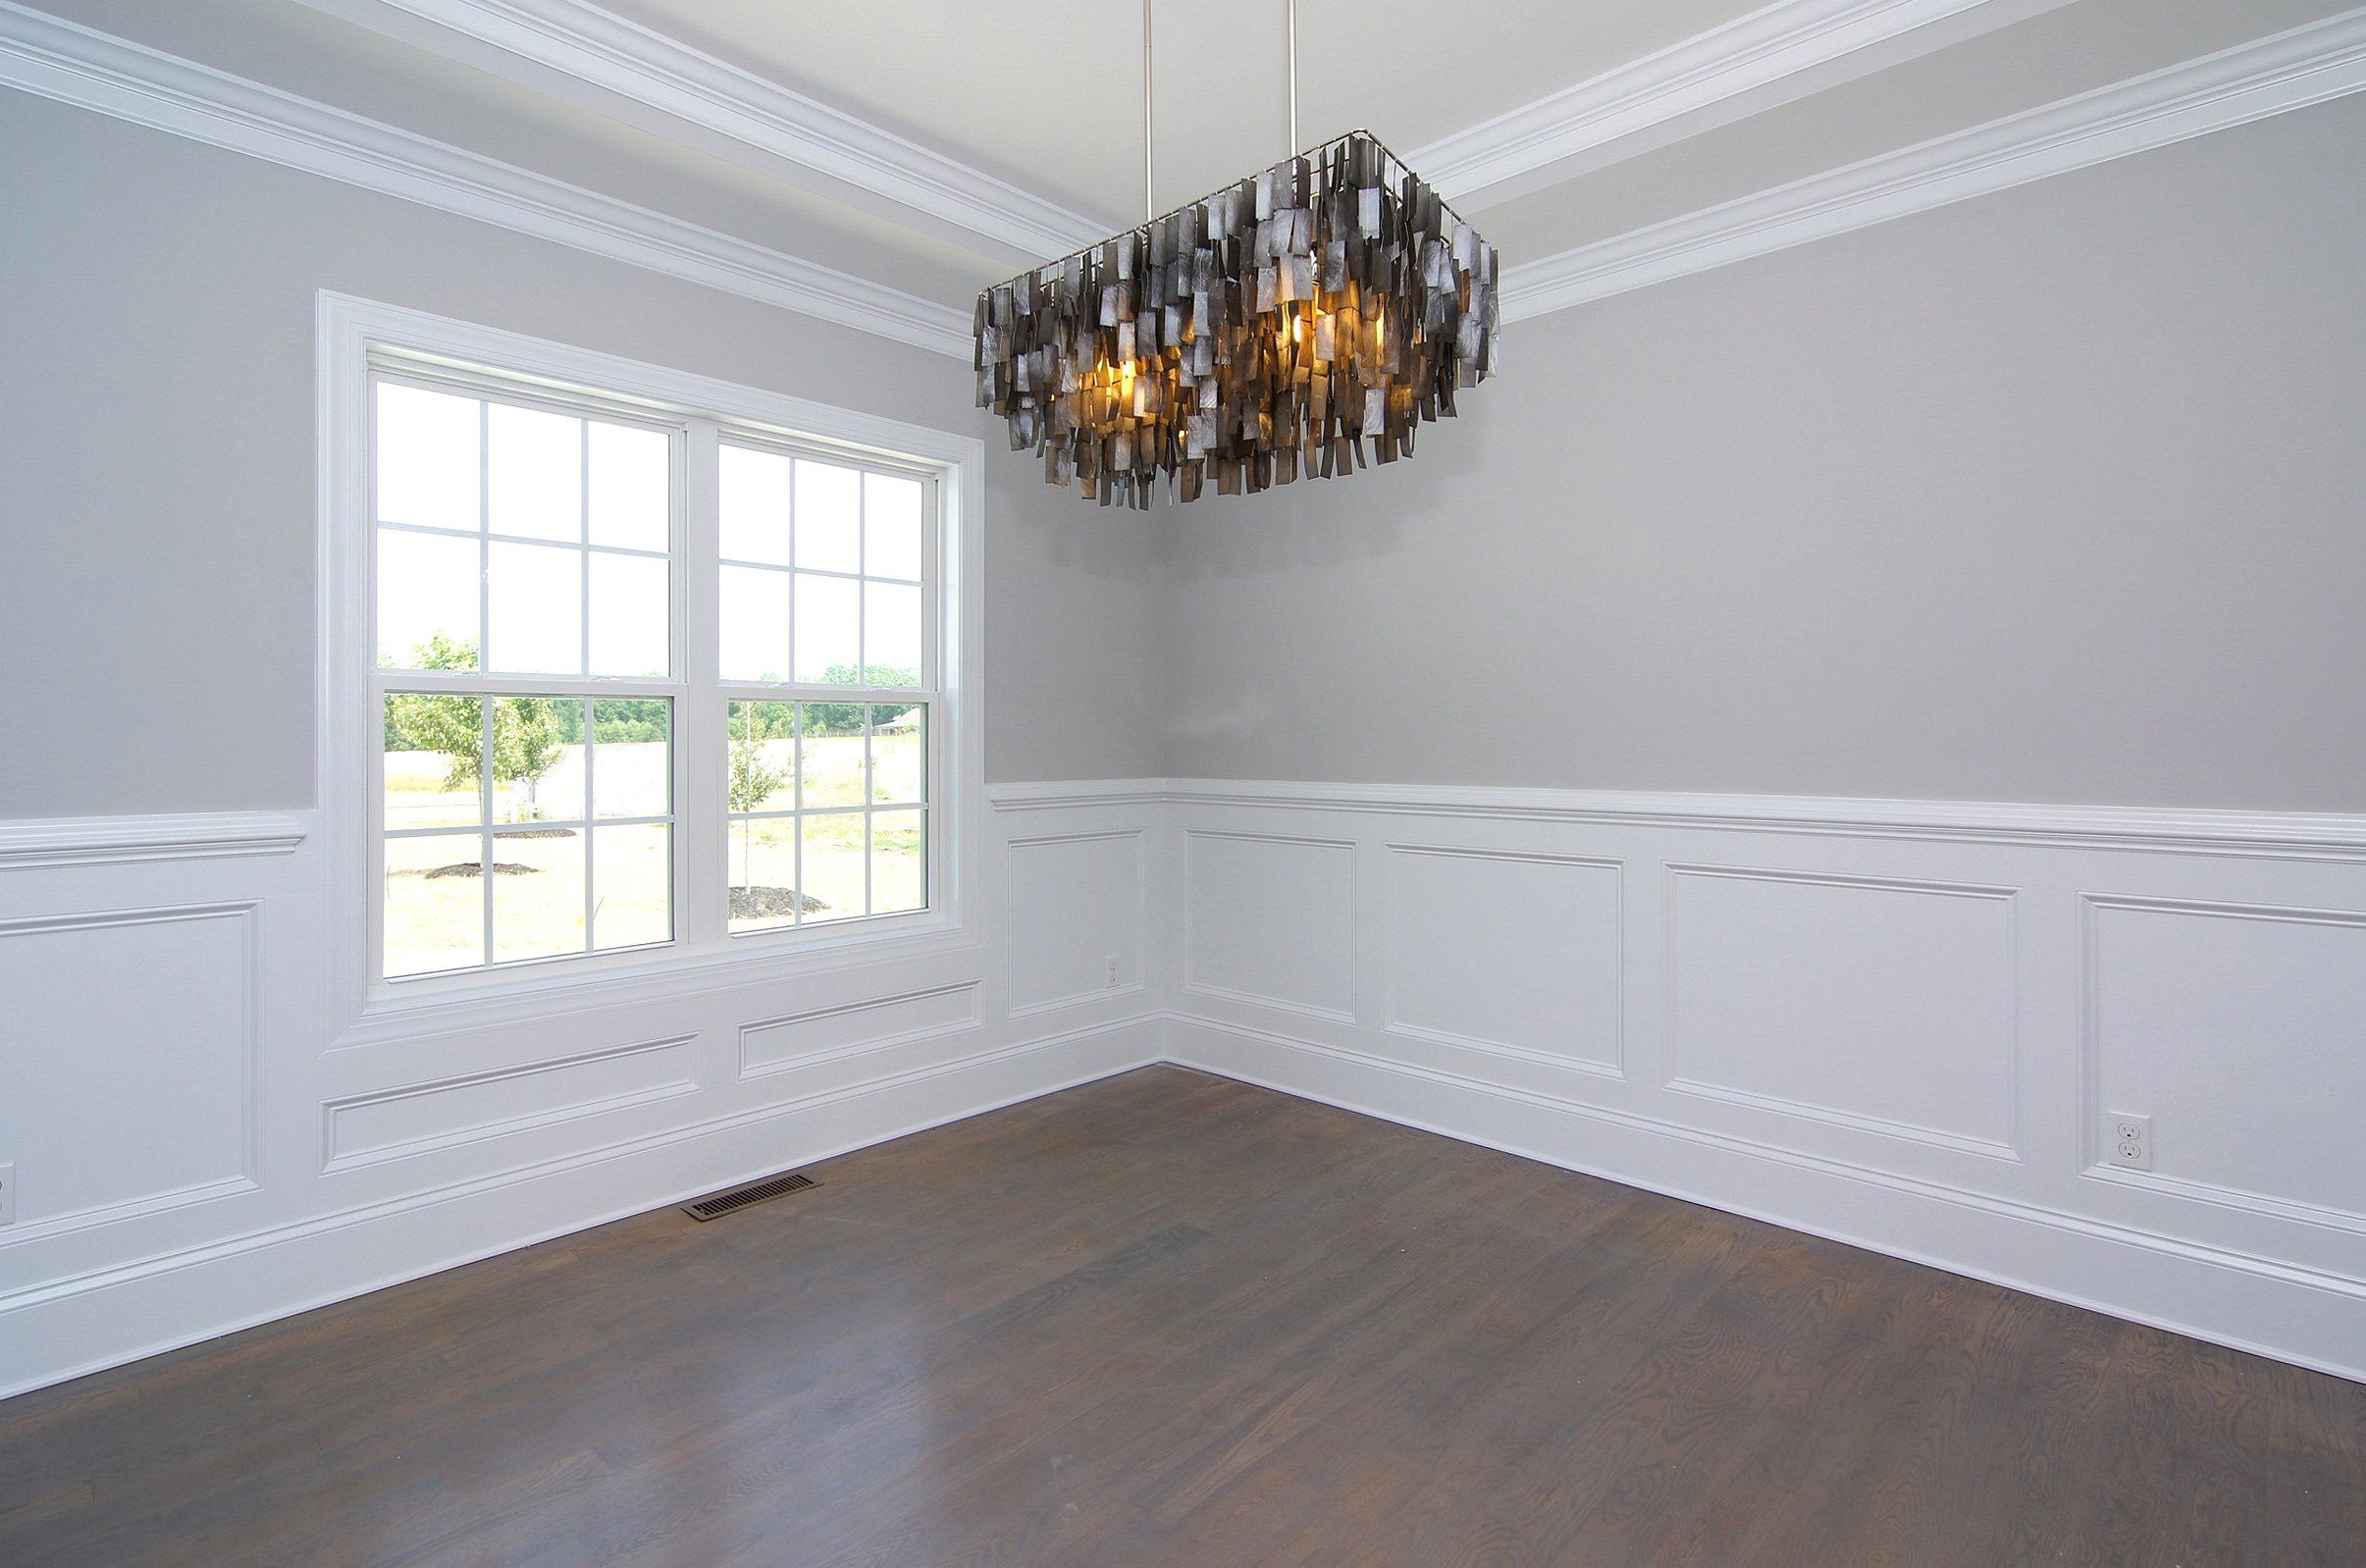 Sherwin Williams Fleur De Sel Gray Walls And White Trim Dining Room Wainscoting White Wainscoting Wainscoting Styles